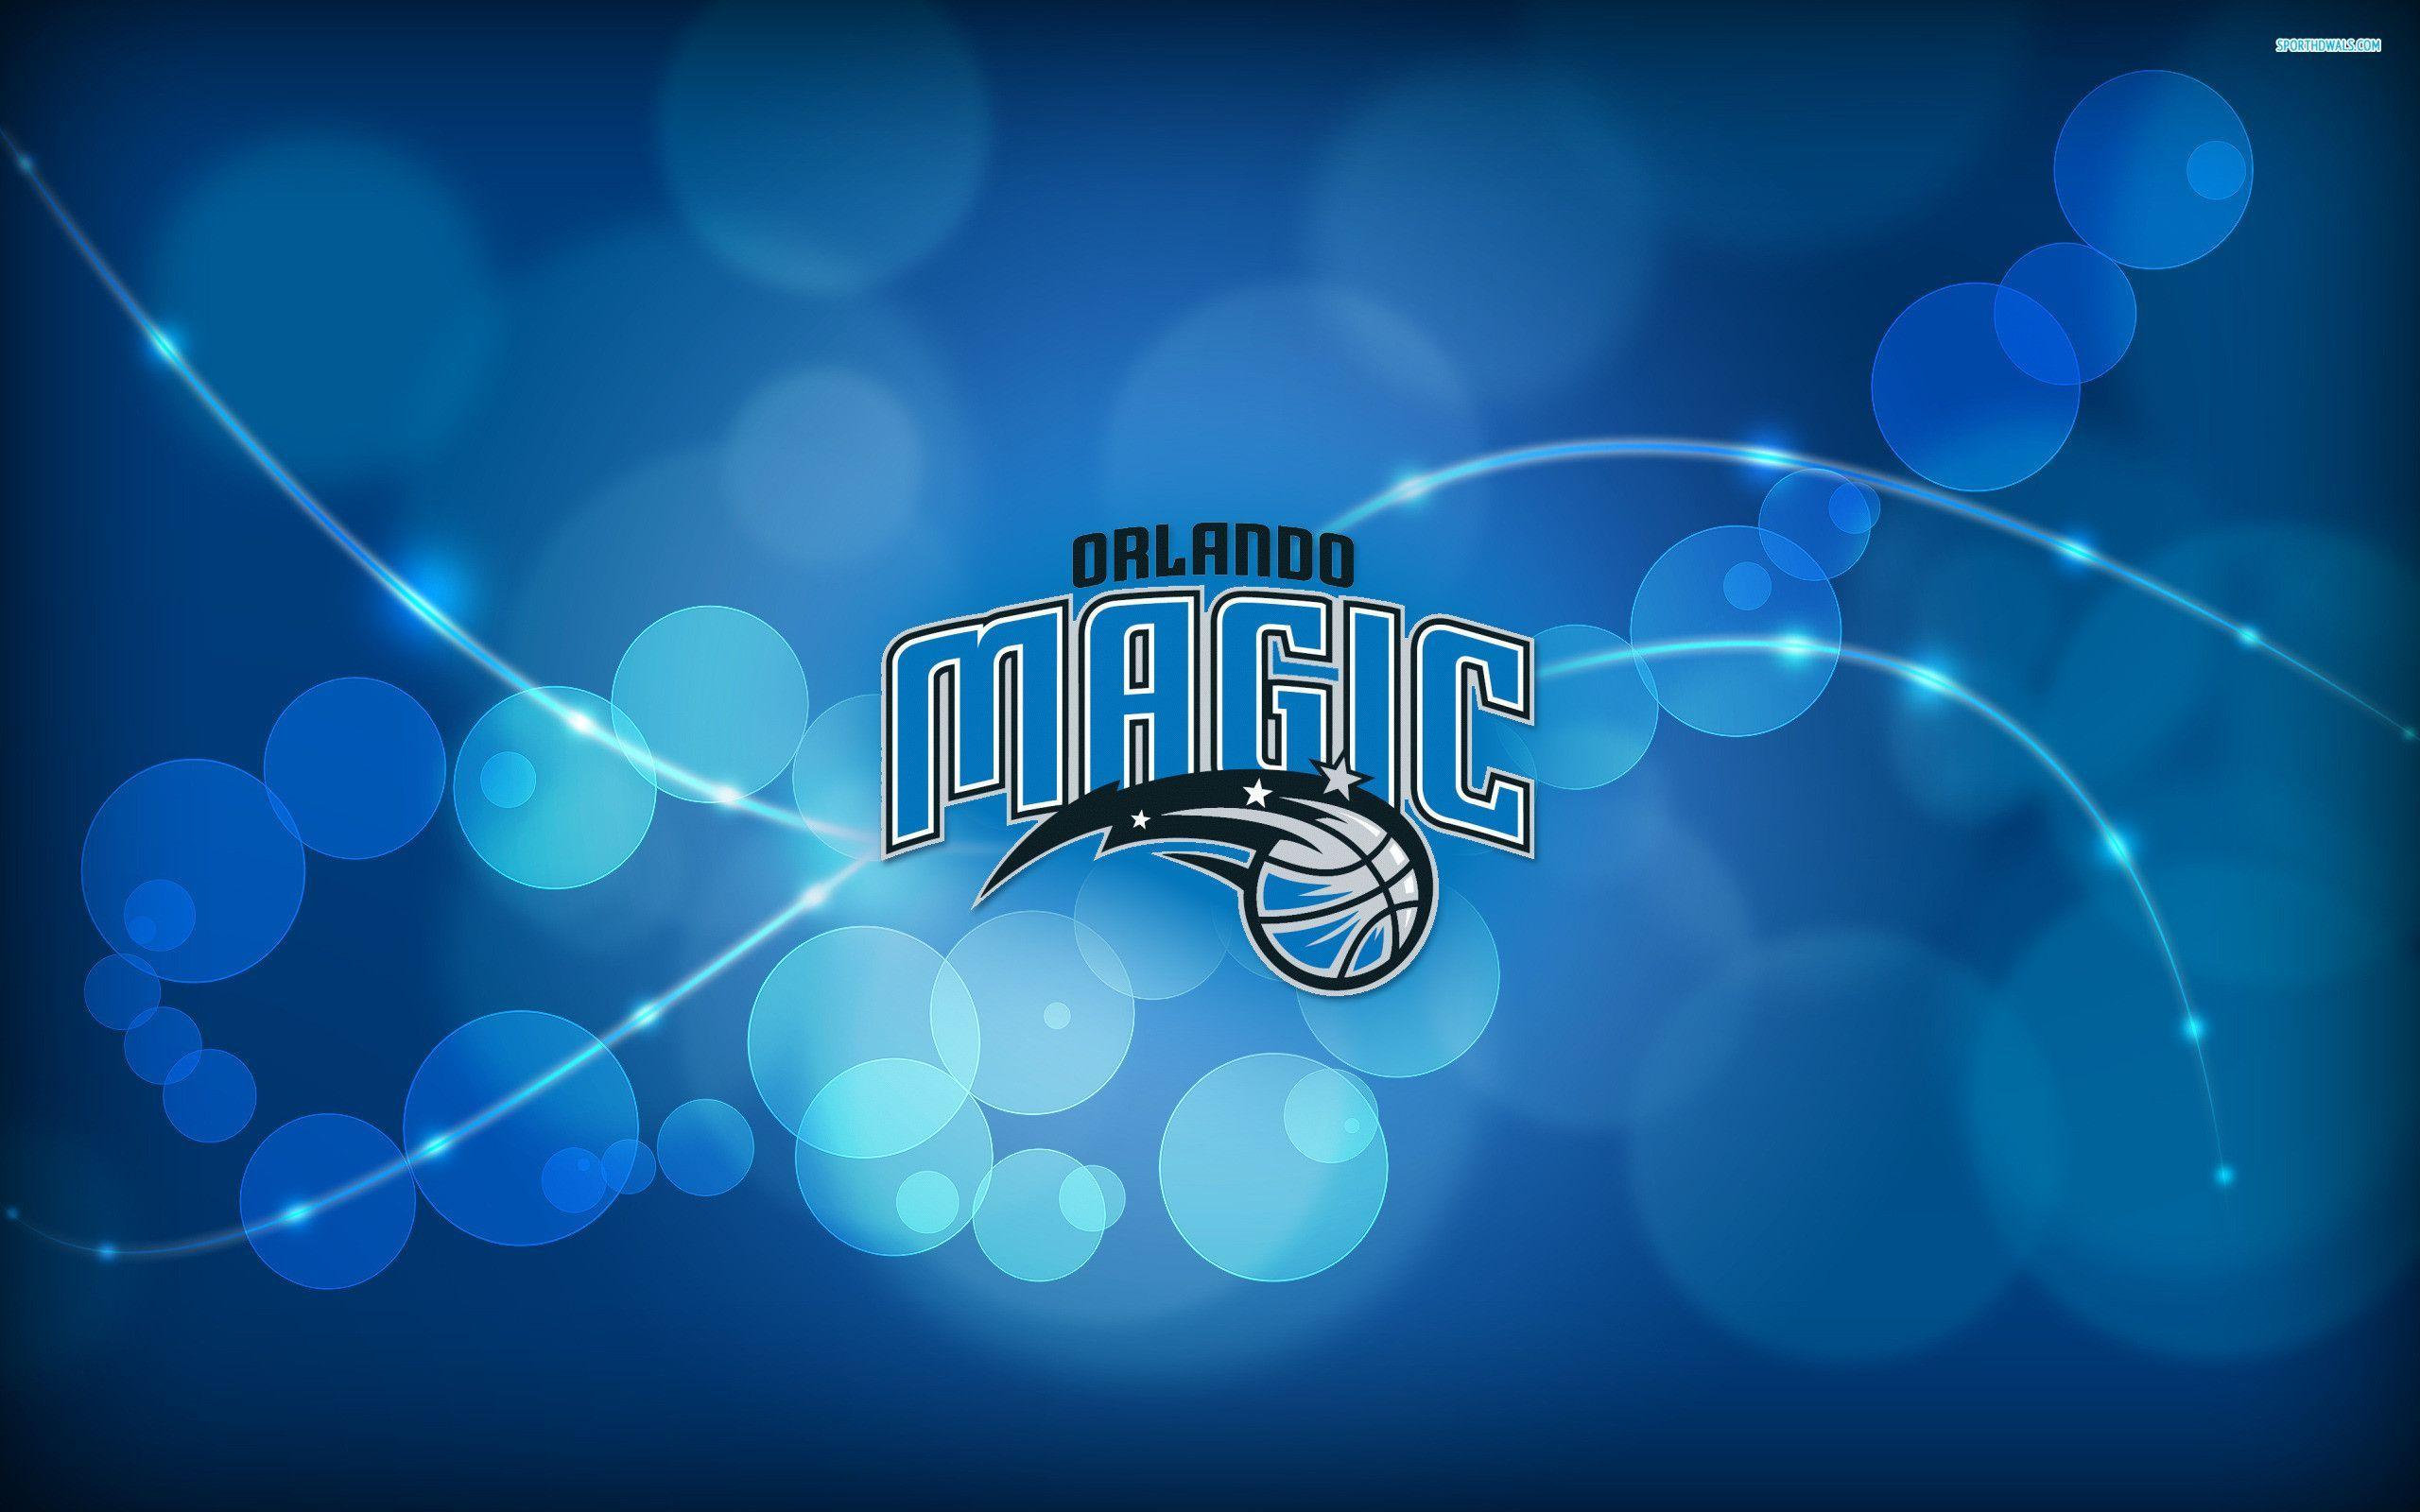 Orlando Magic wallpapers #